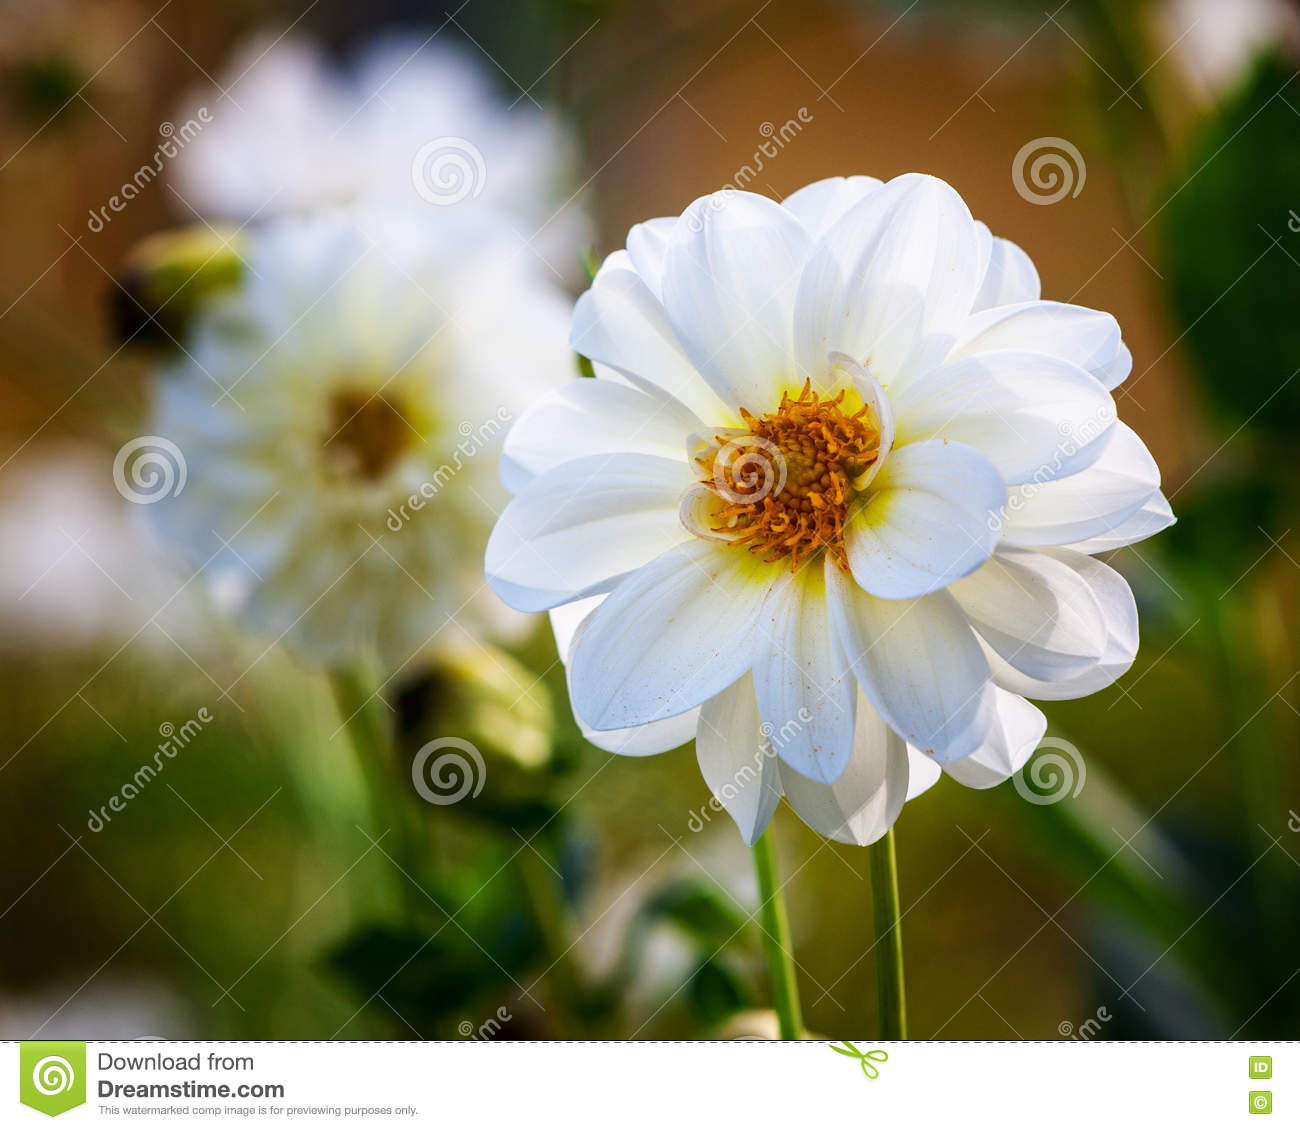 White dahlia stock image image of outdoors floral blooming 80077521 white dahlia mightylinksfo